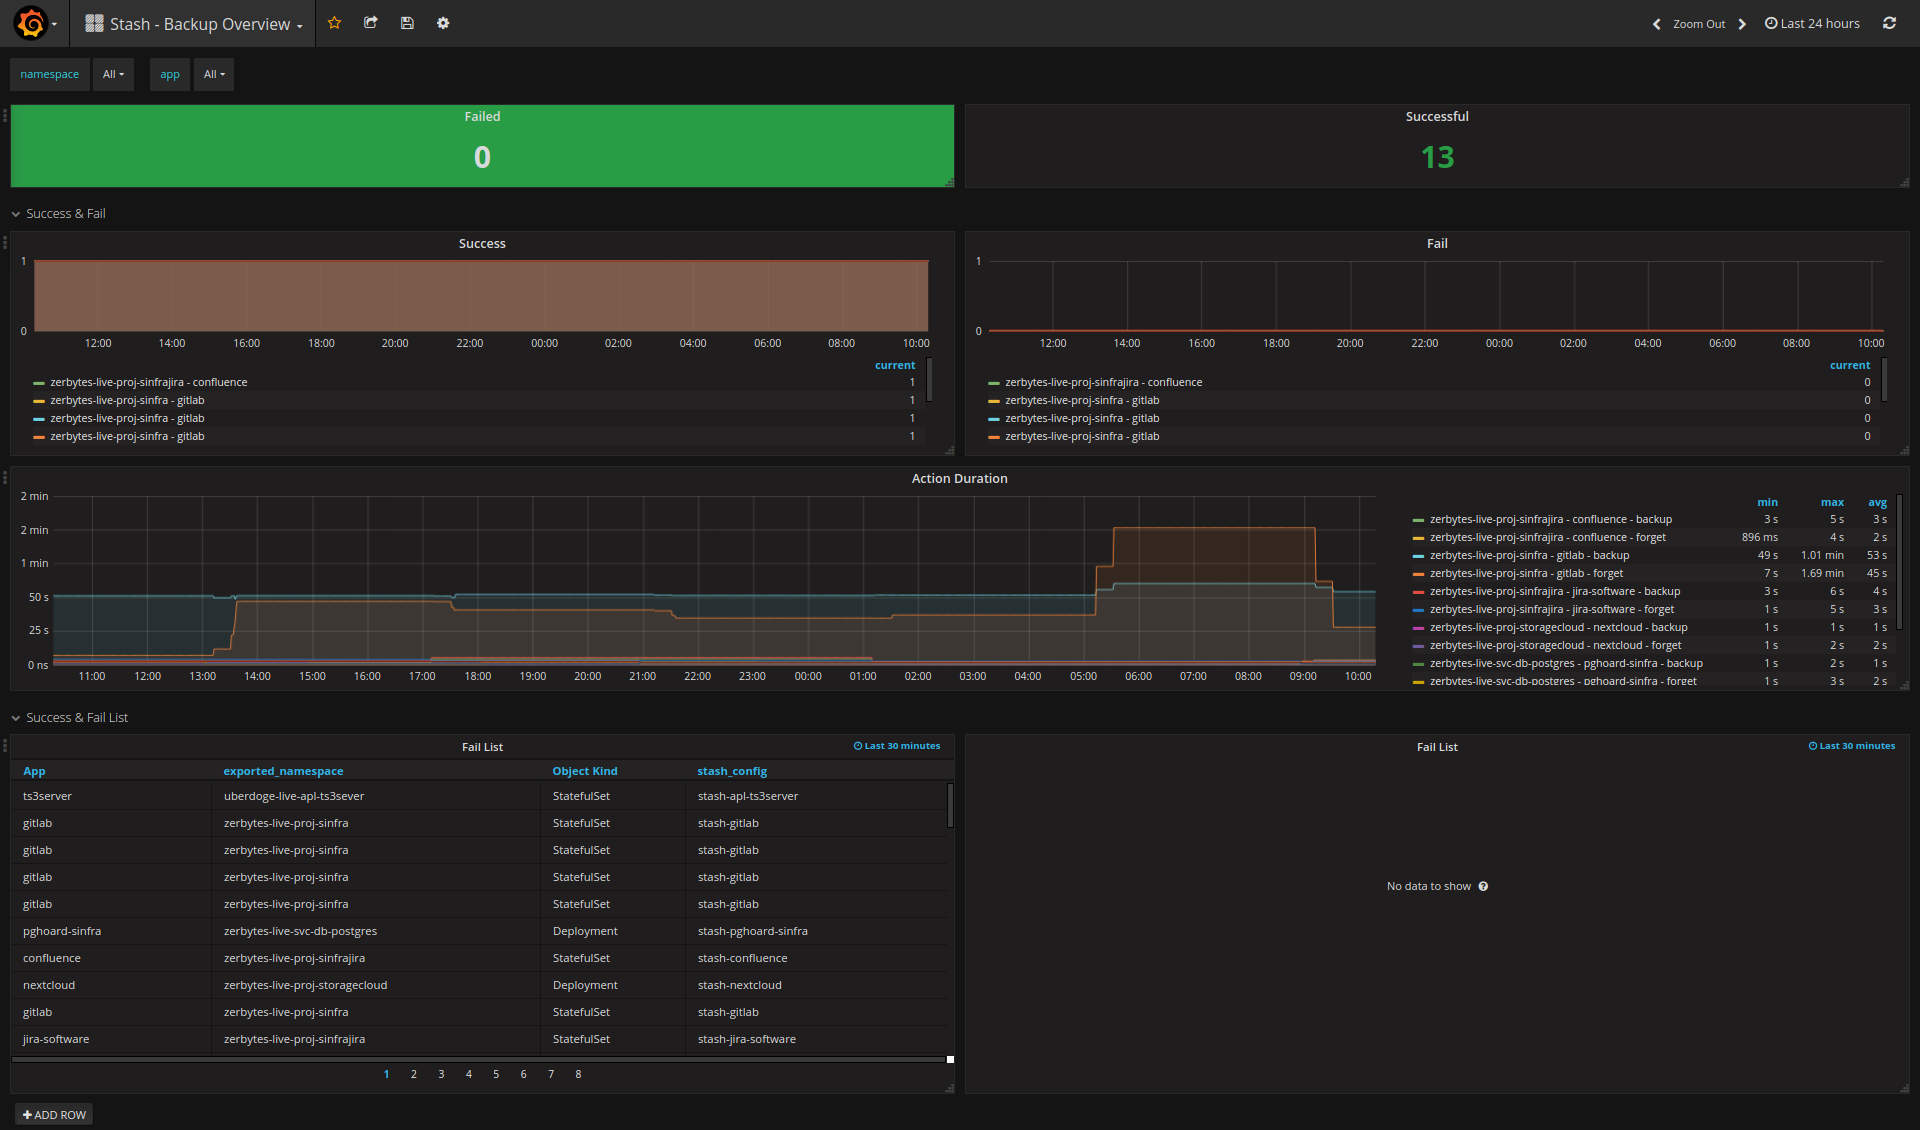 Stash - Backup Overview - Grafana Dashboard